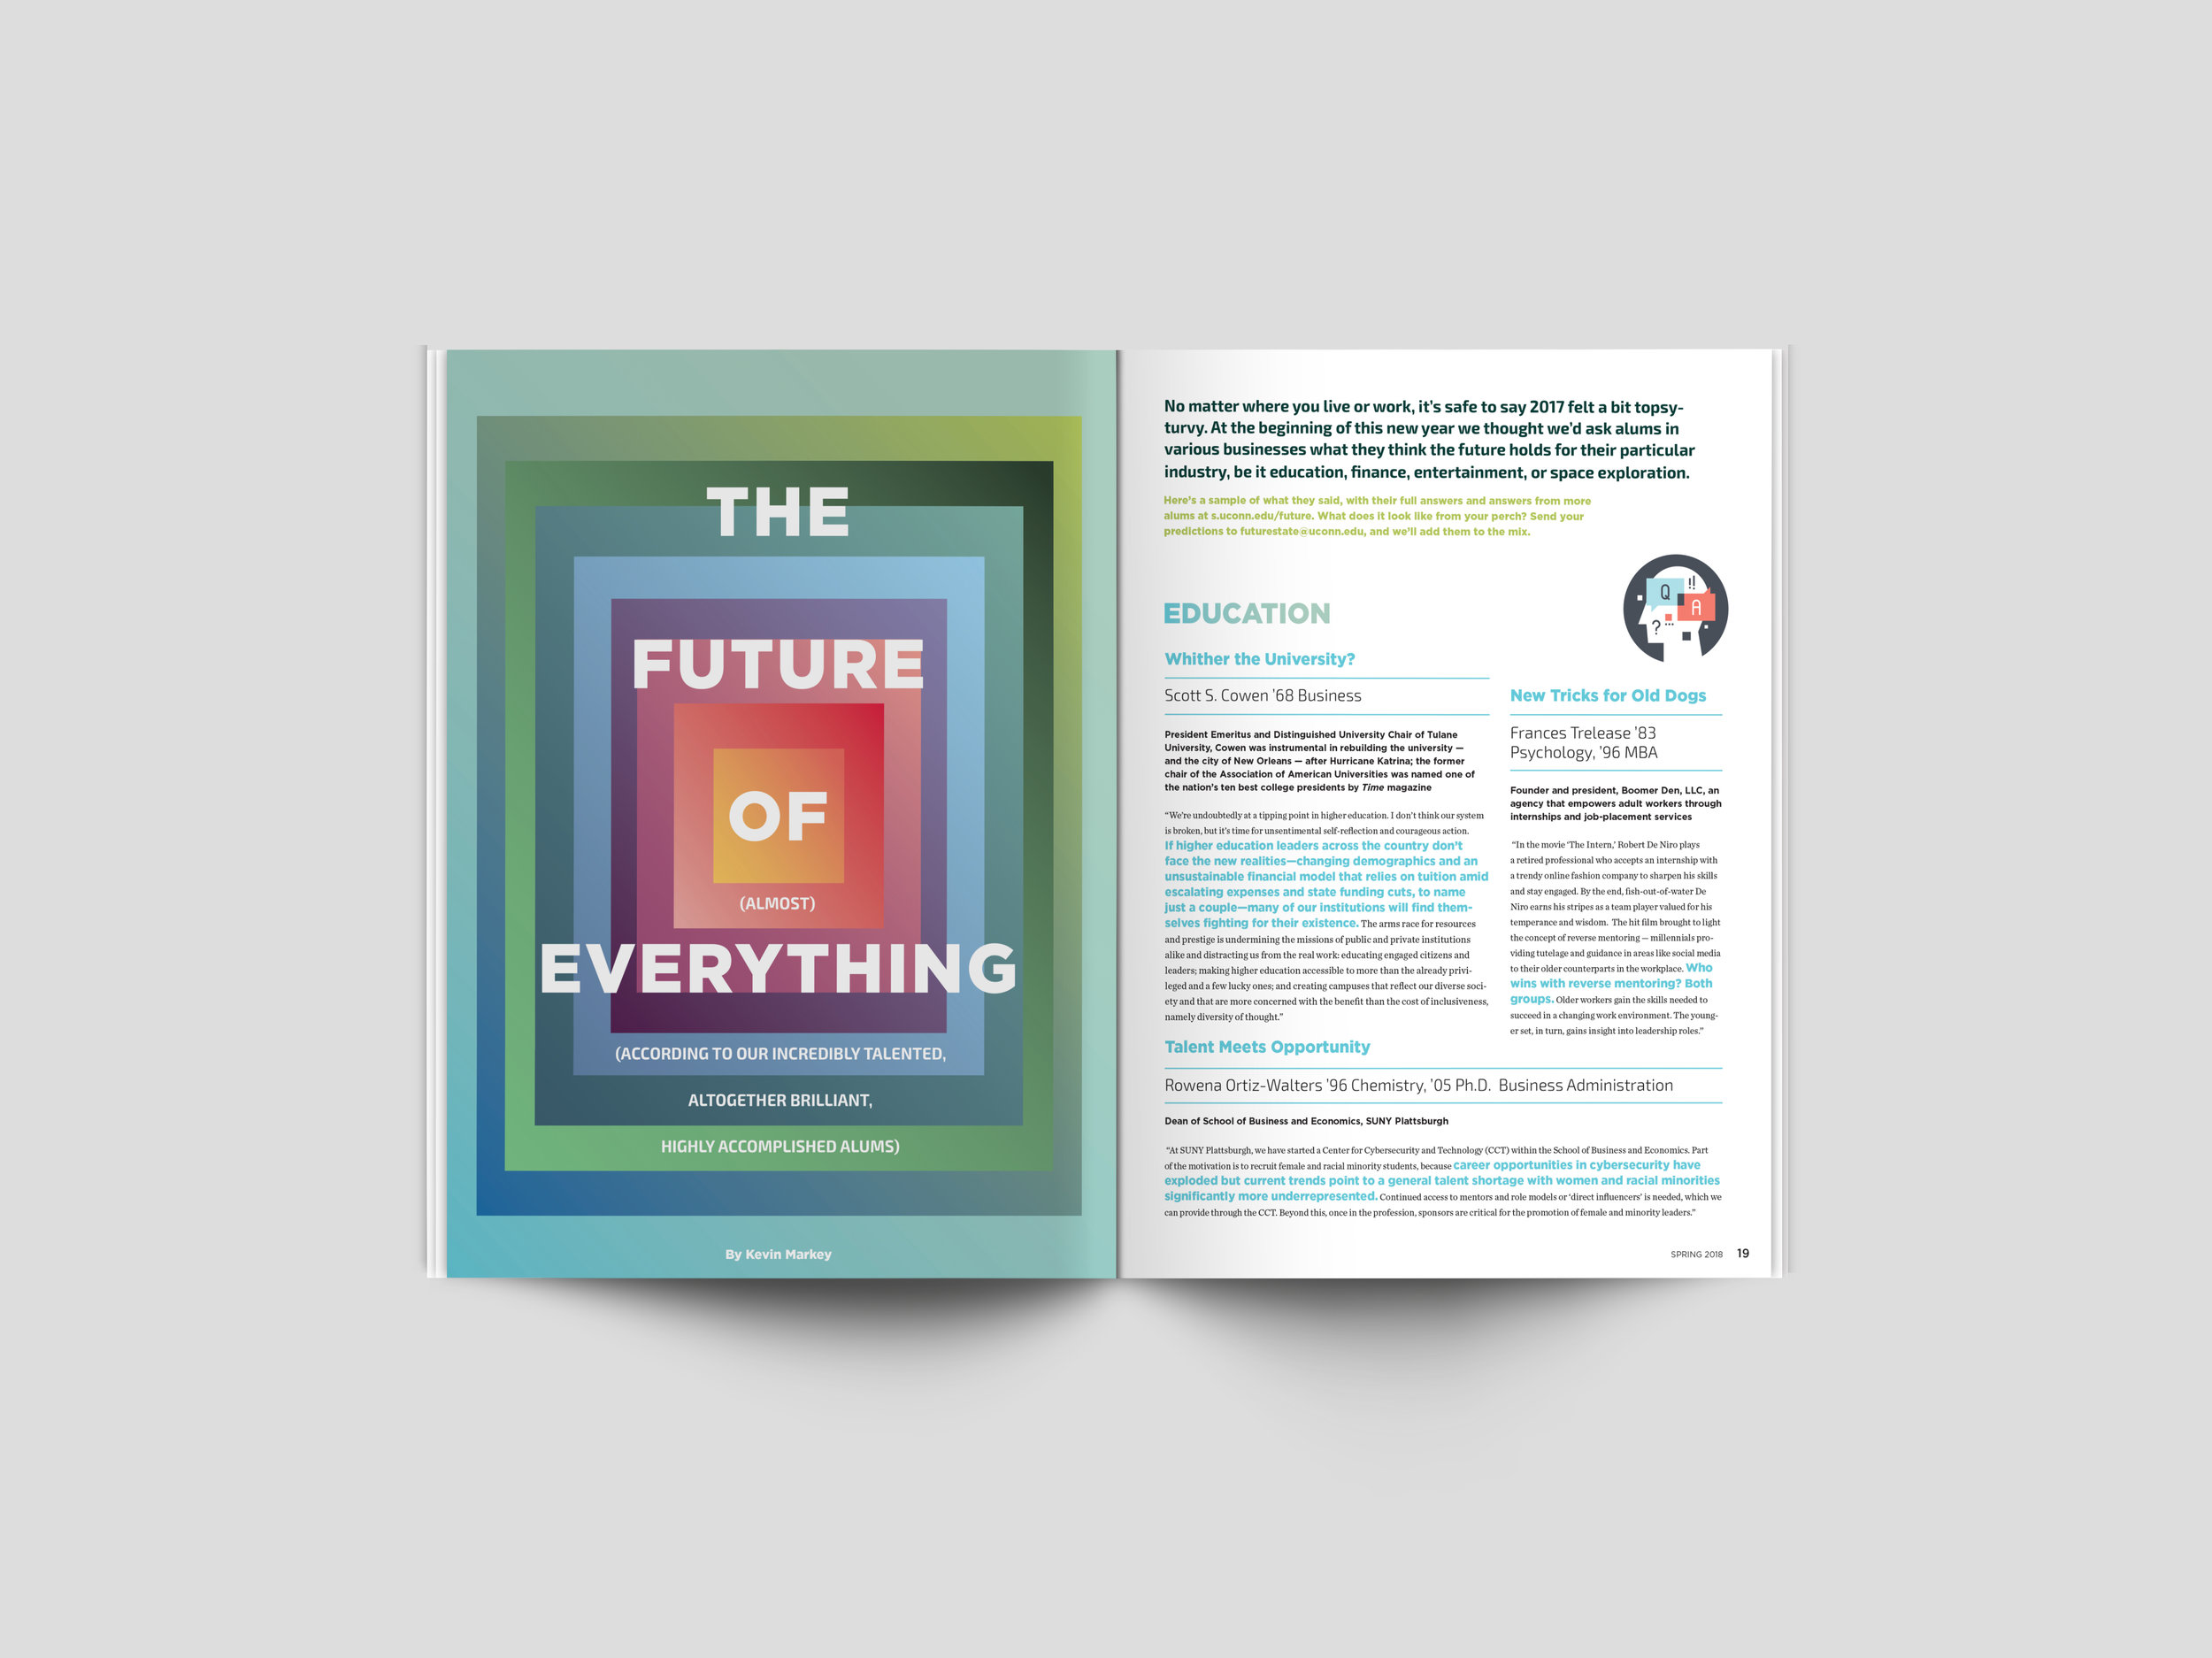 The Future of (Almost) Everything (According to Our Incredibly Talented, Altogether Brilliant, Highly Accomplished Alums) – Spring 2018